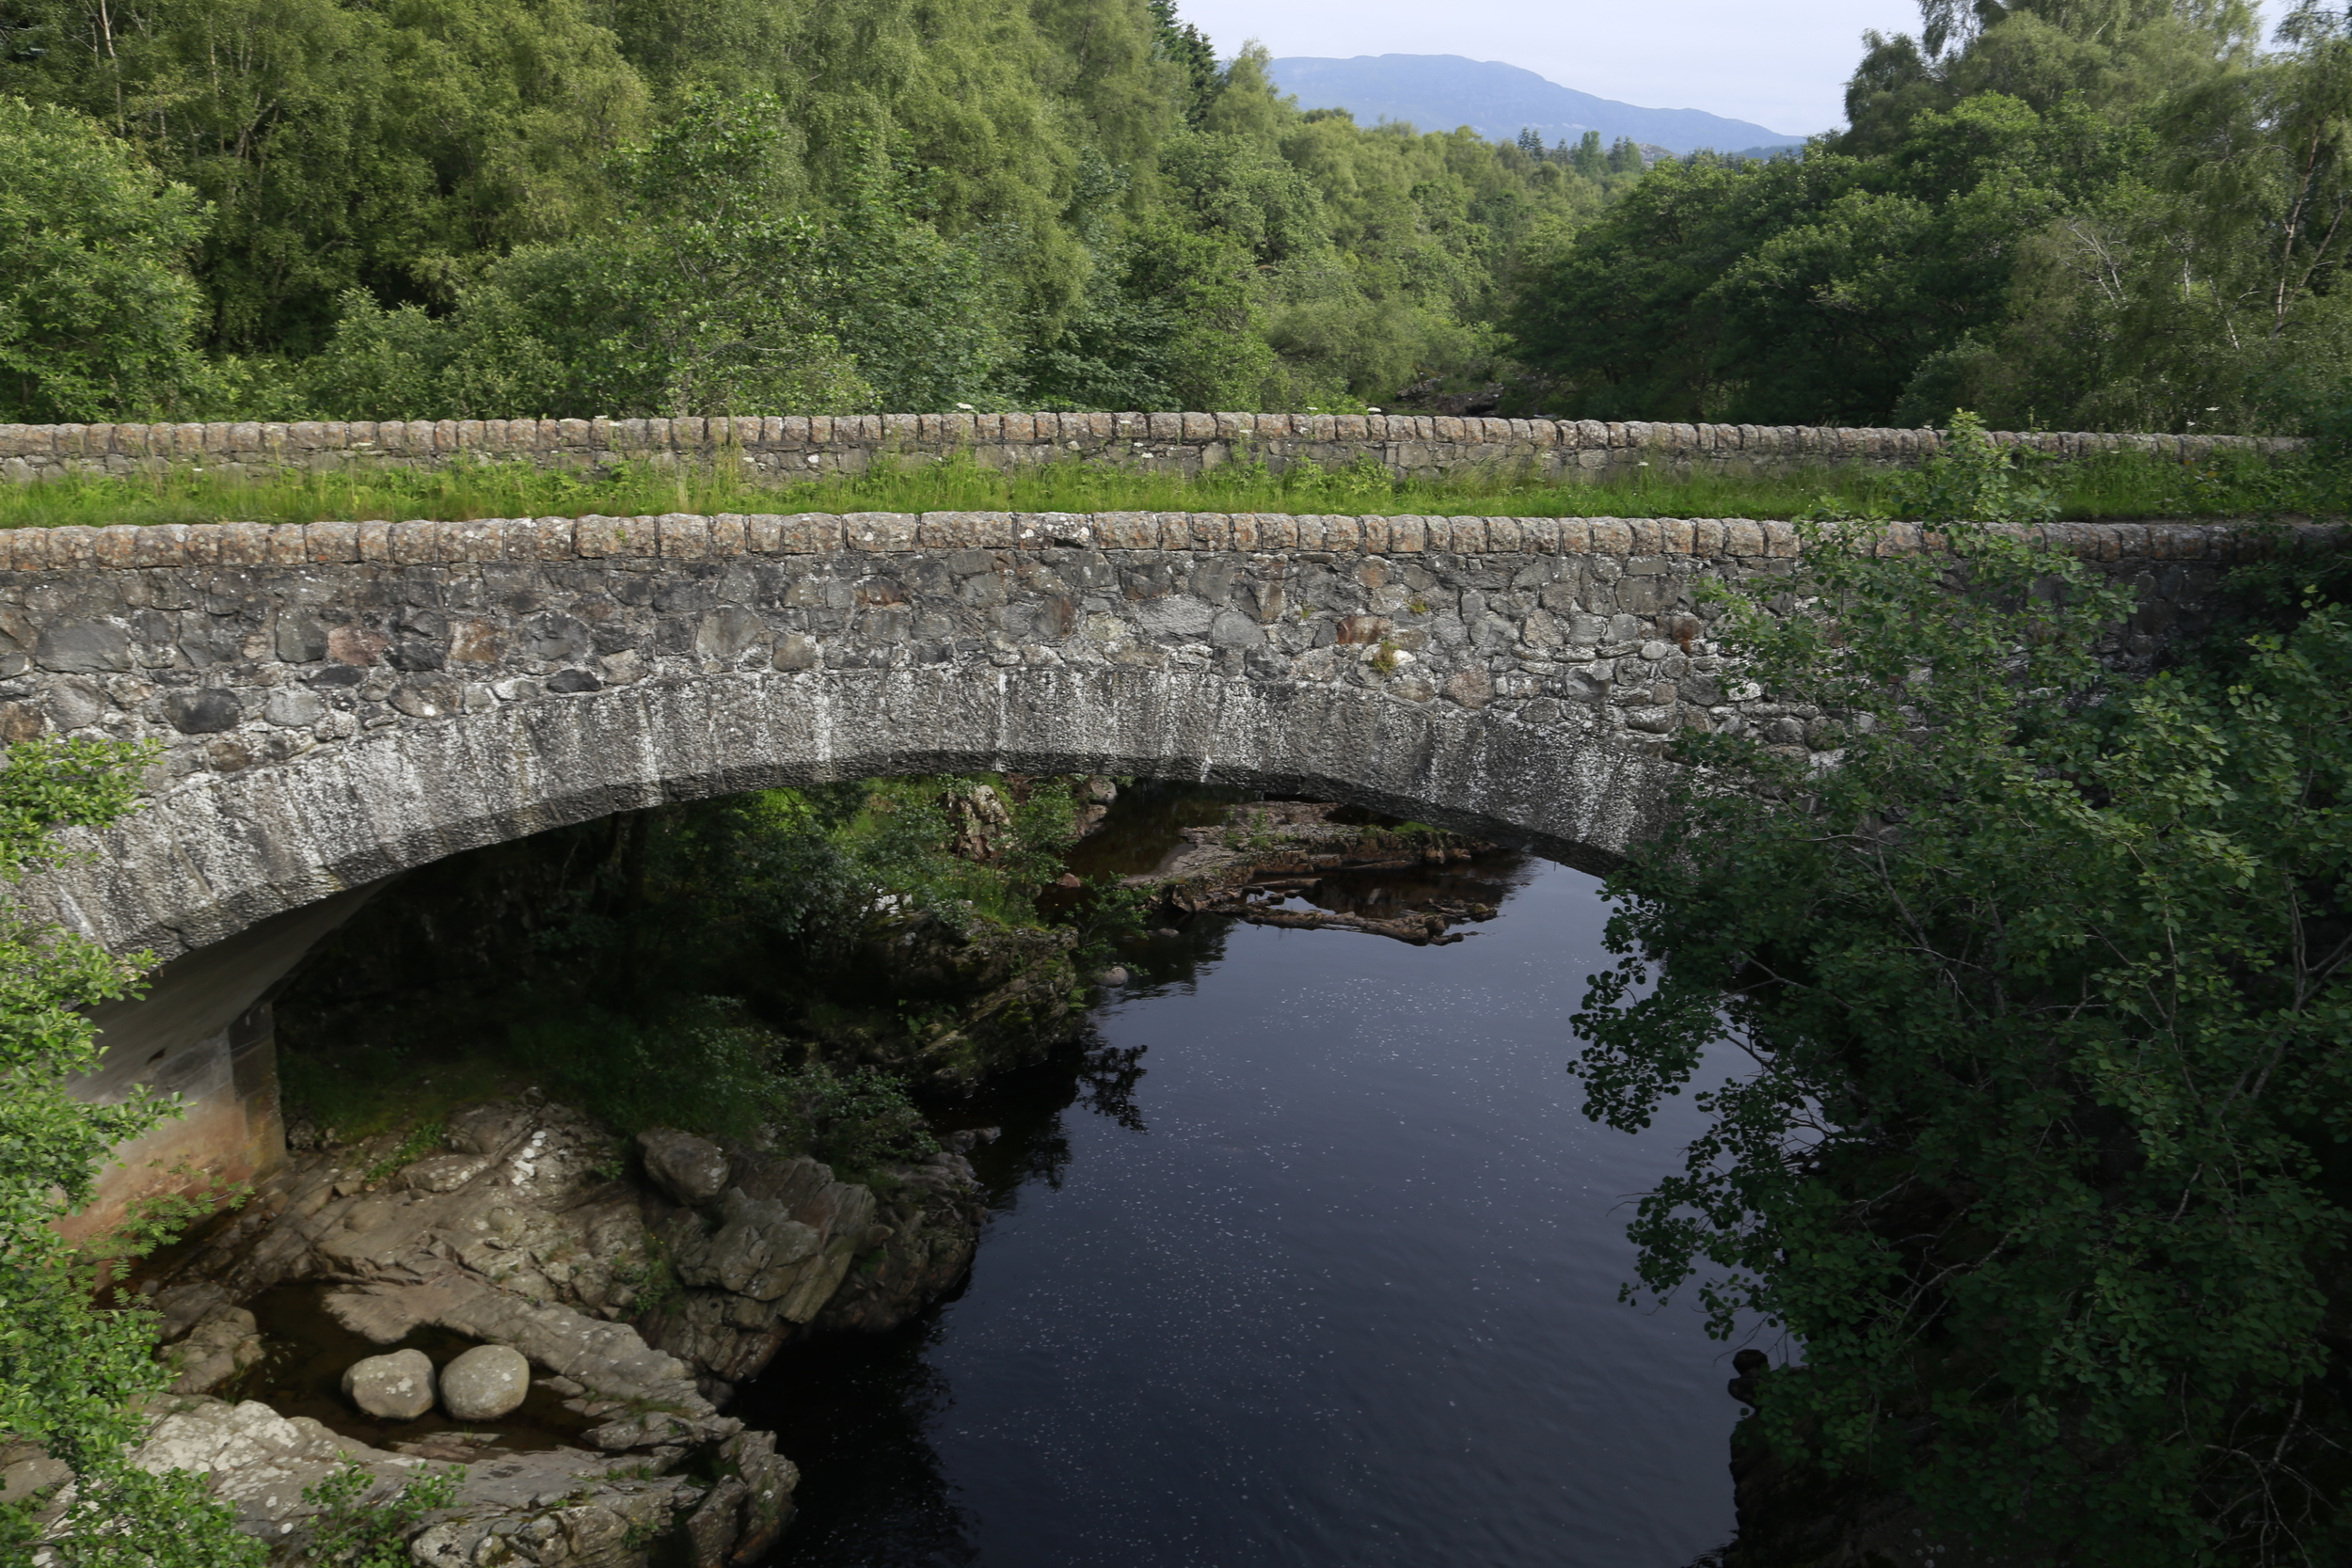 scotland, bridge, river, photography, canon, canon 6d, portrait, landscape, dslr, photo, photos, go pro, video, photographer, fuji, leica